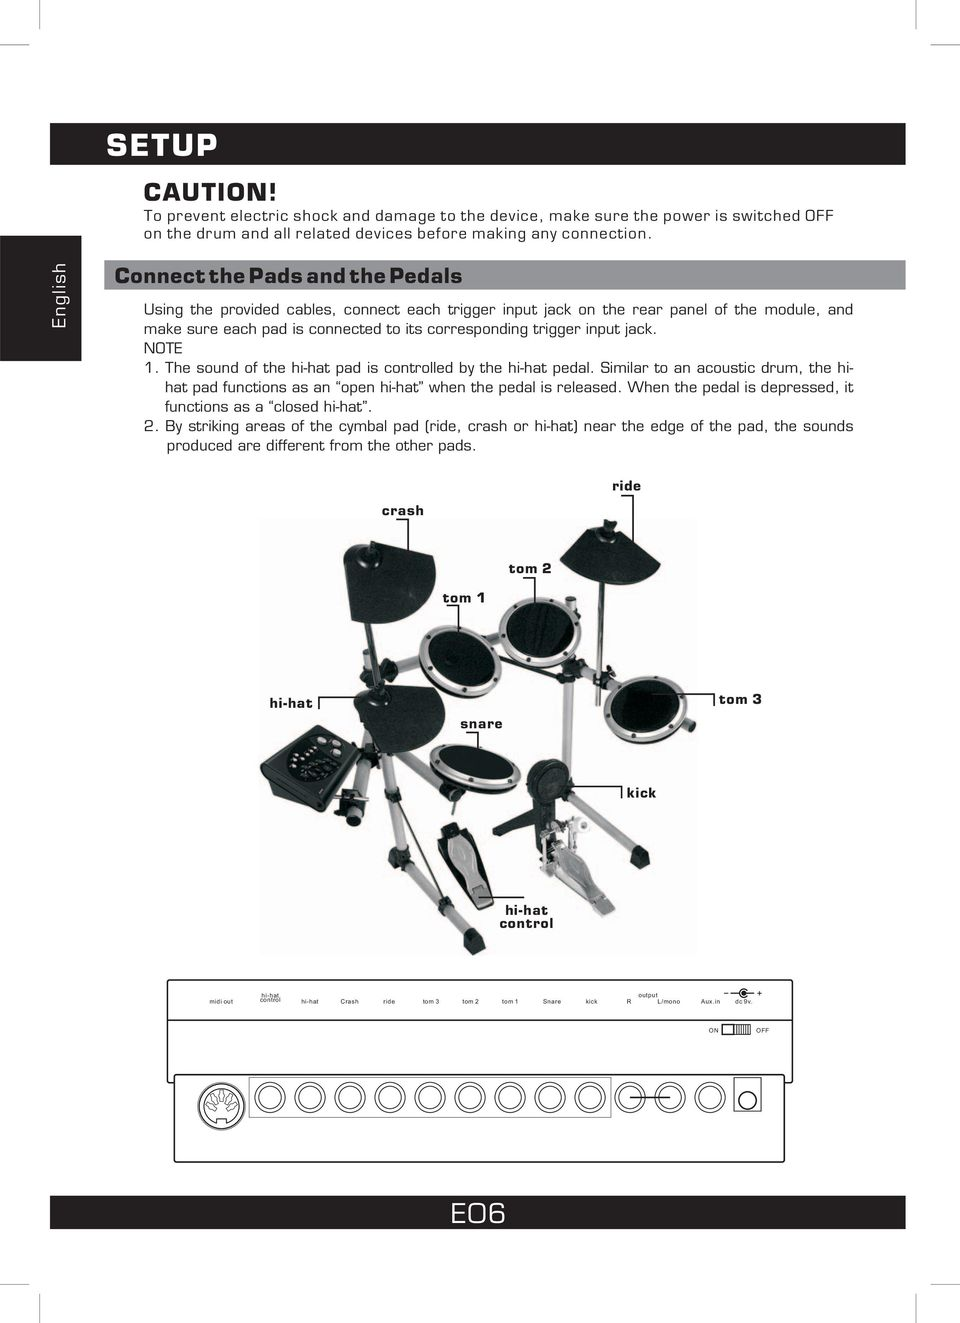 input jack. NOTE 1. The sound of the hi-hat pad is controlled by the hi-hat pedal. Similar to an acoustic drum, the hihat pad functions as an open hi-hat when the pedal is released.